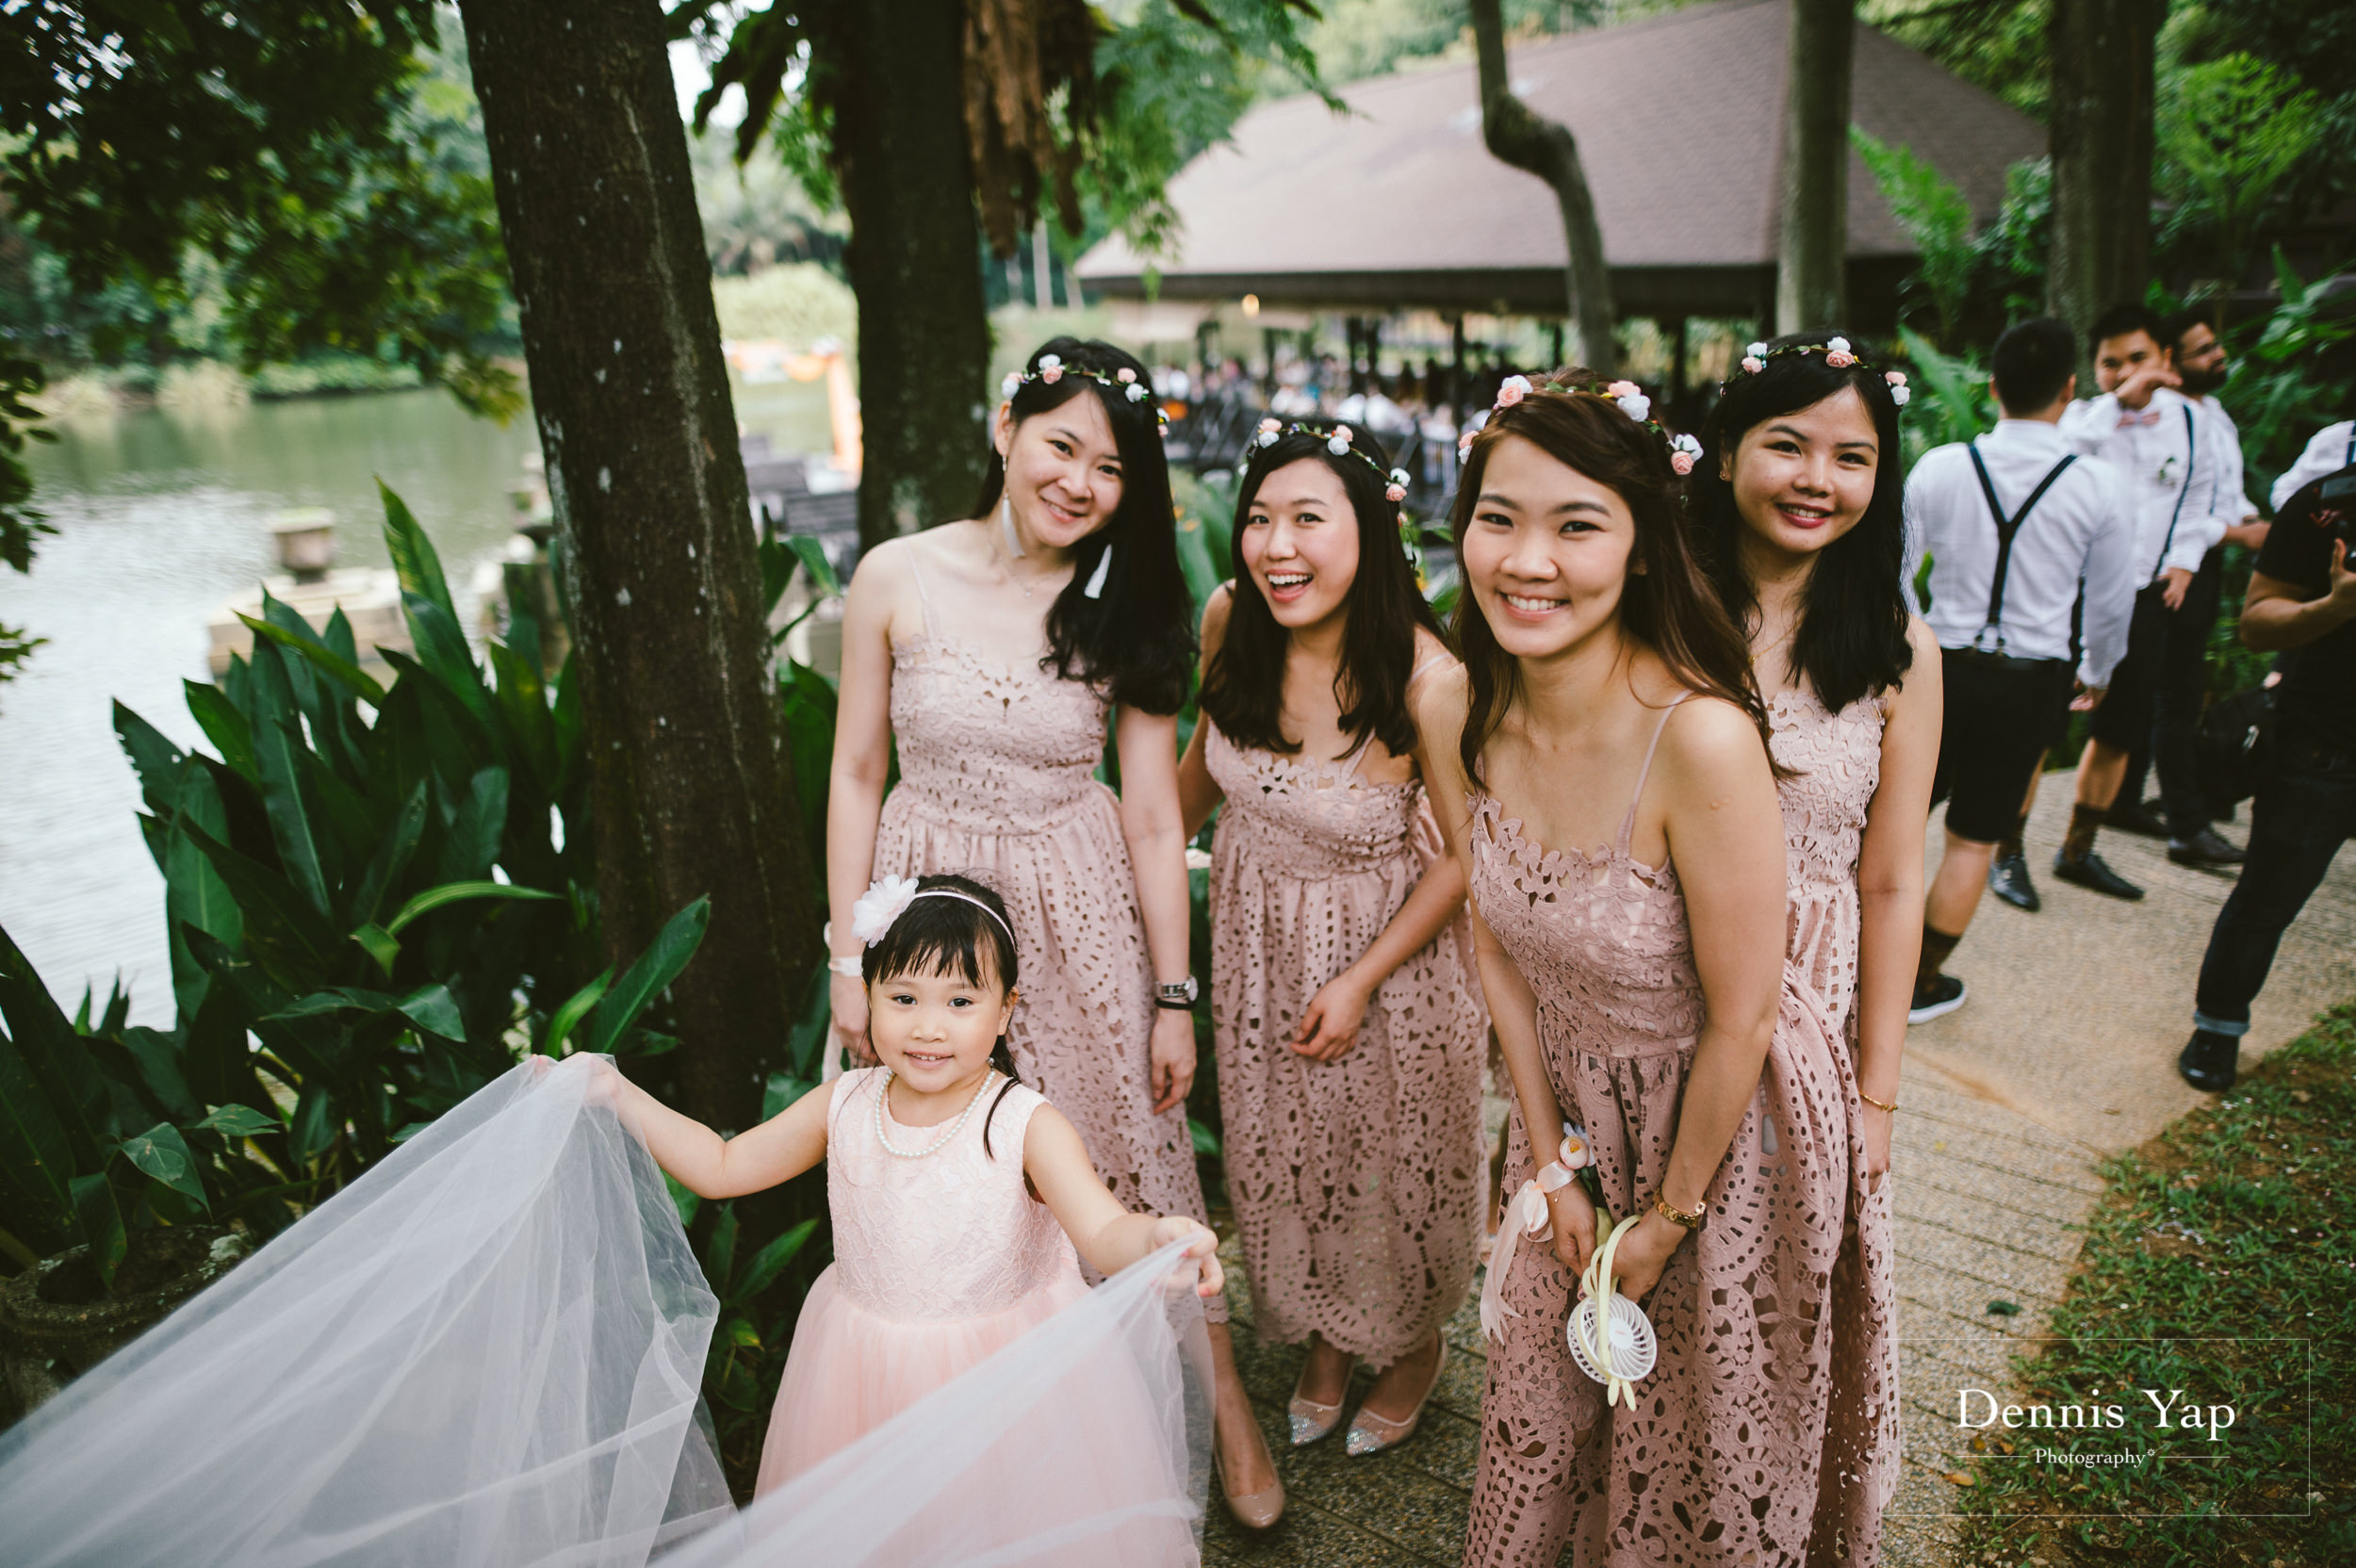 kit weng melissa gita bayu garden wedding dennis yap photography-22.jpg